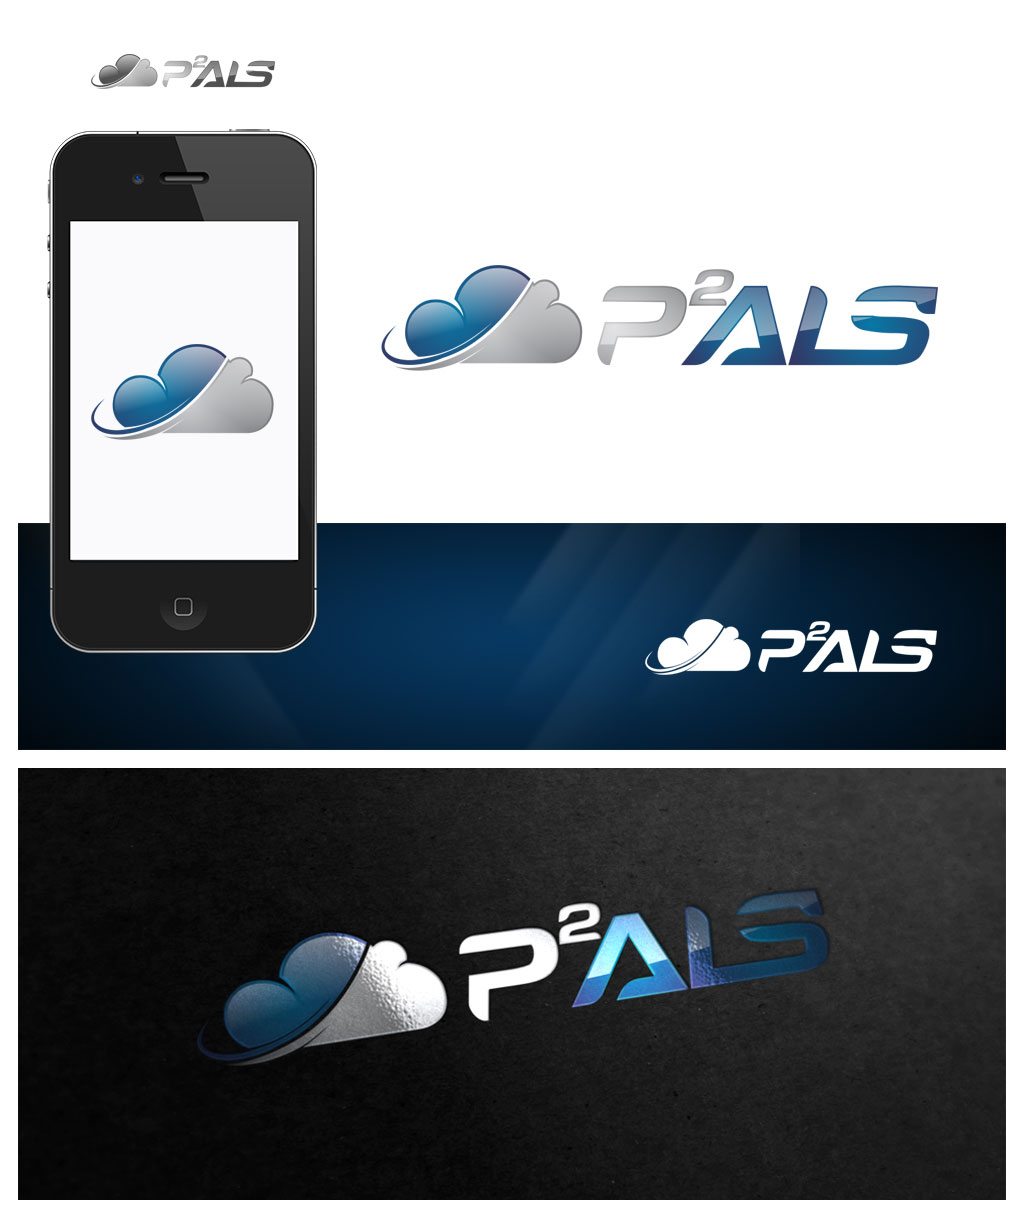 P2ALS logo by overminded-creation